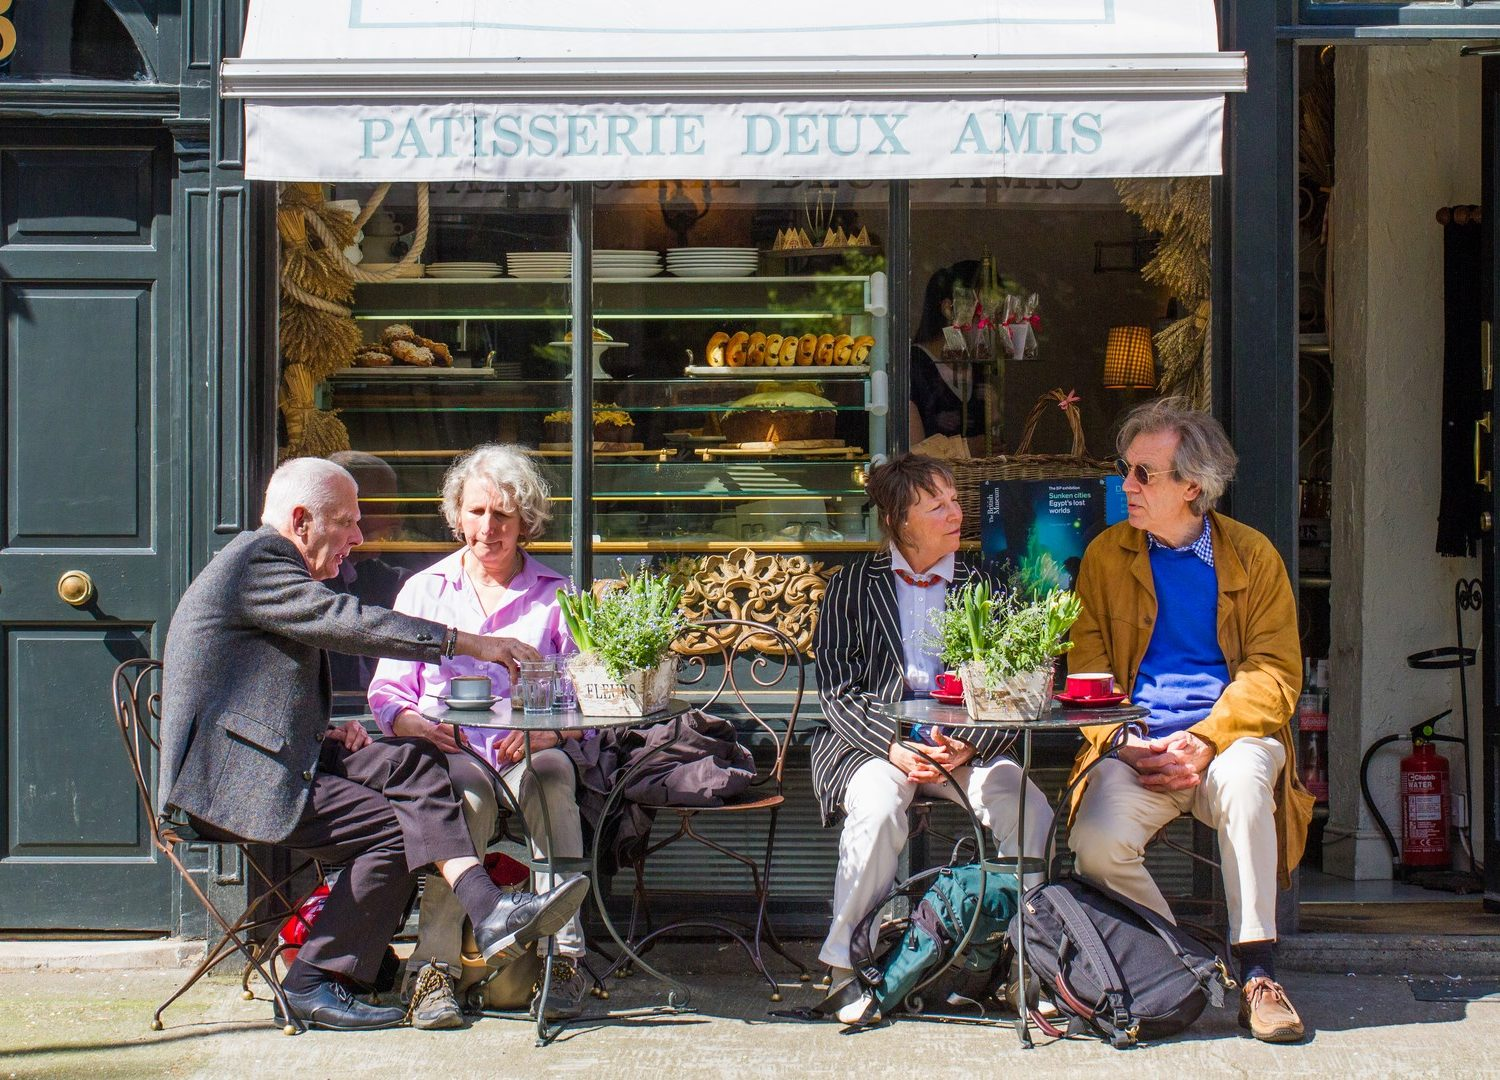 London, UK - May 5, 2016. Elderly tourist couples sitting outside at a French patisseries tables and enjoying a well earned rest after touring the streets of London.